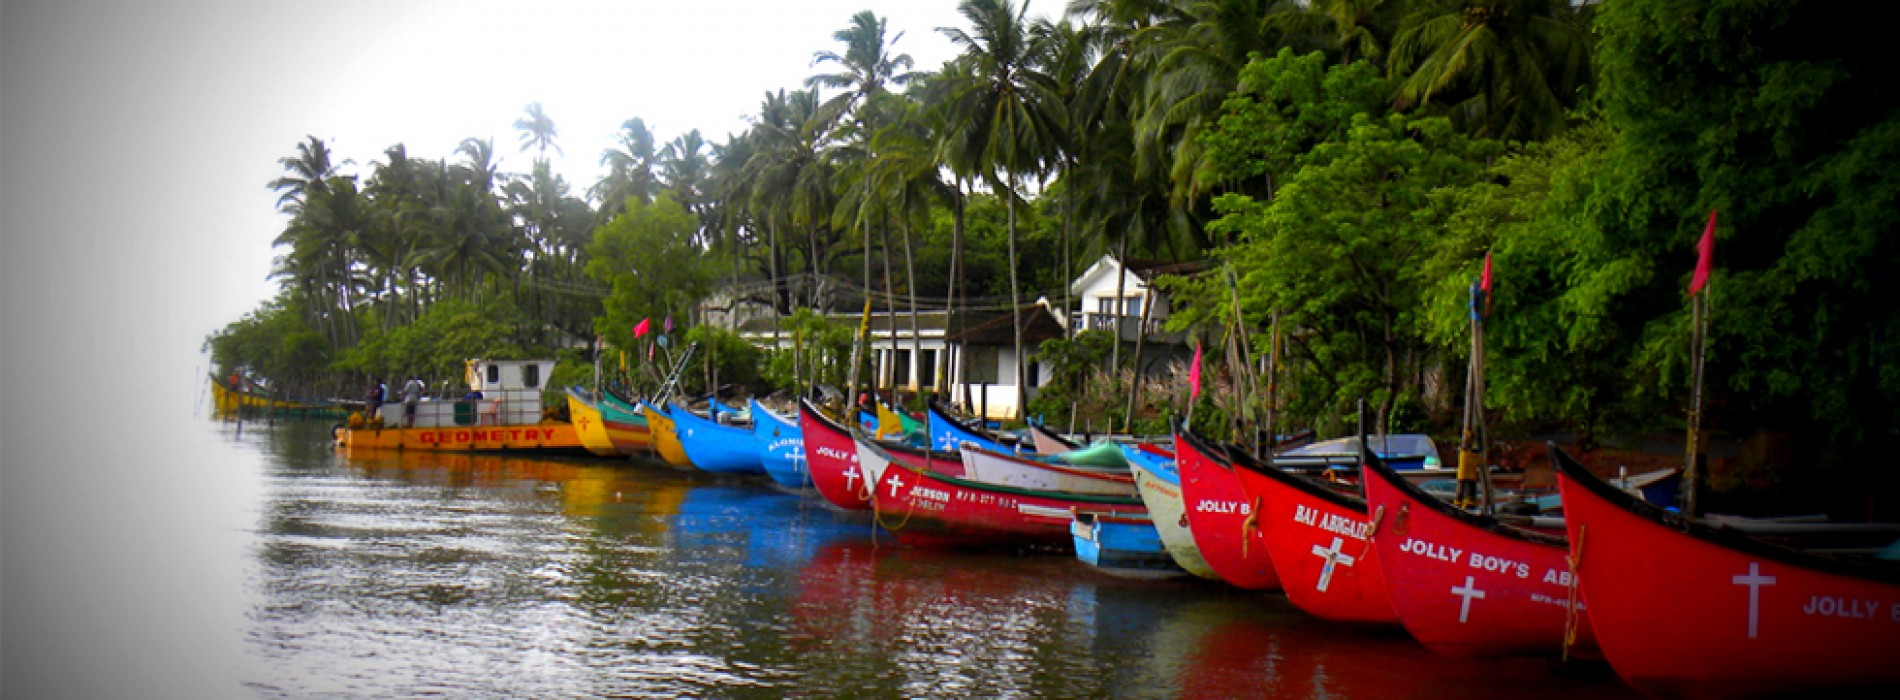 As per survey Goa is India's most popular monsoon travel destination